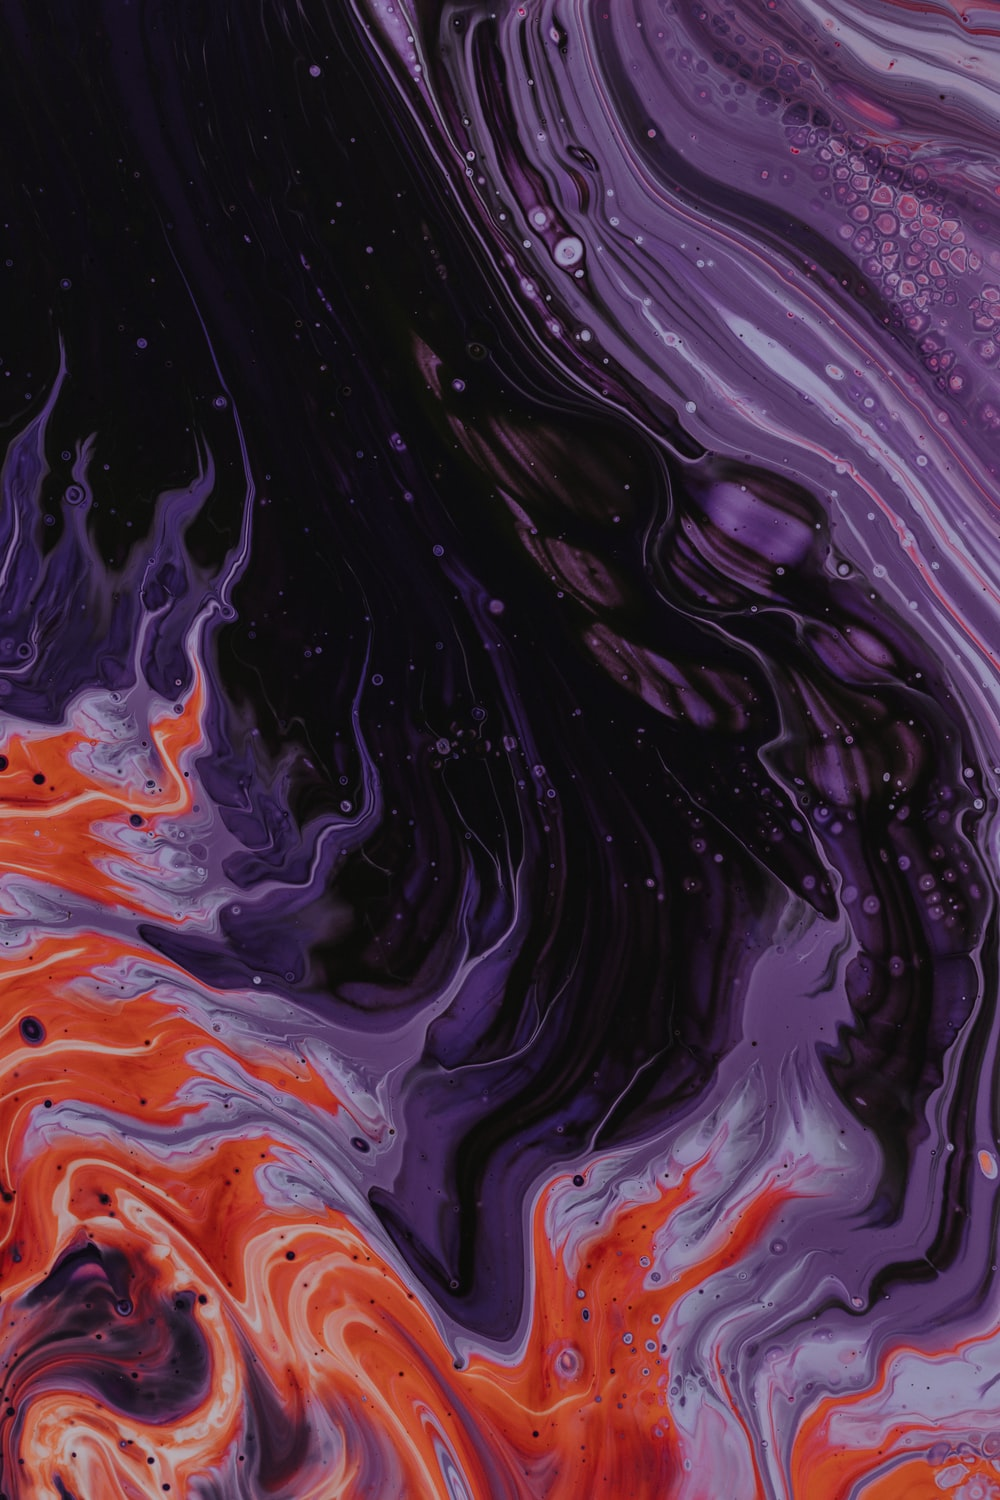 purple, black, and orange abstract paintin